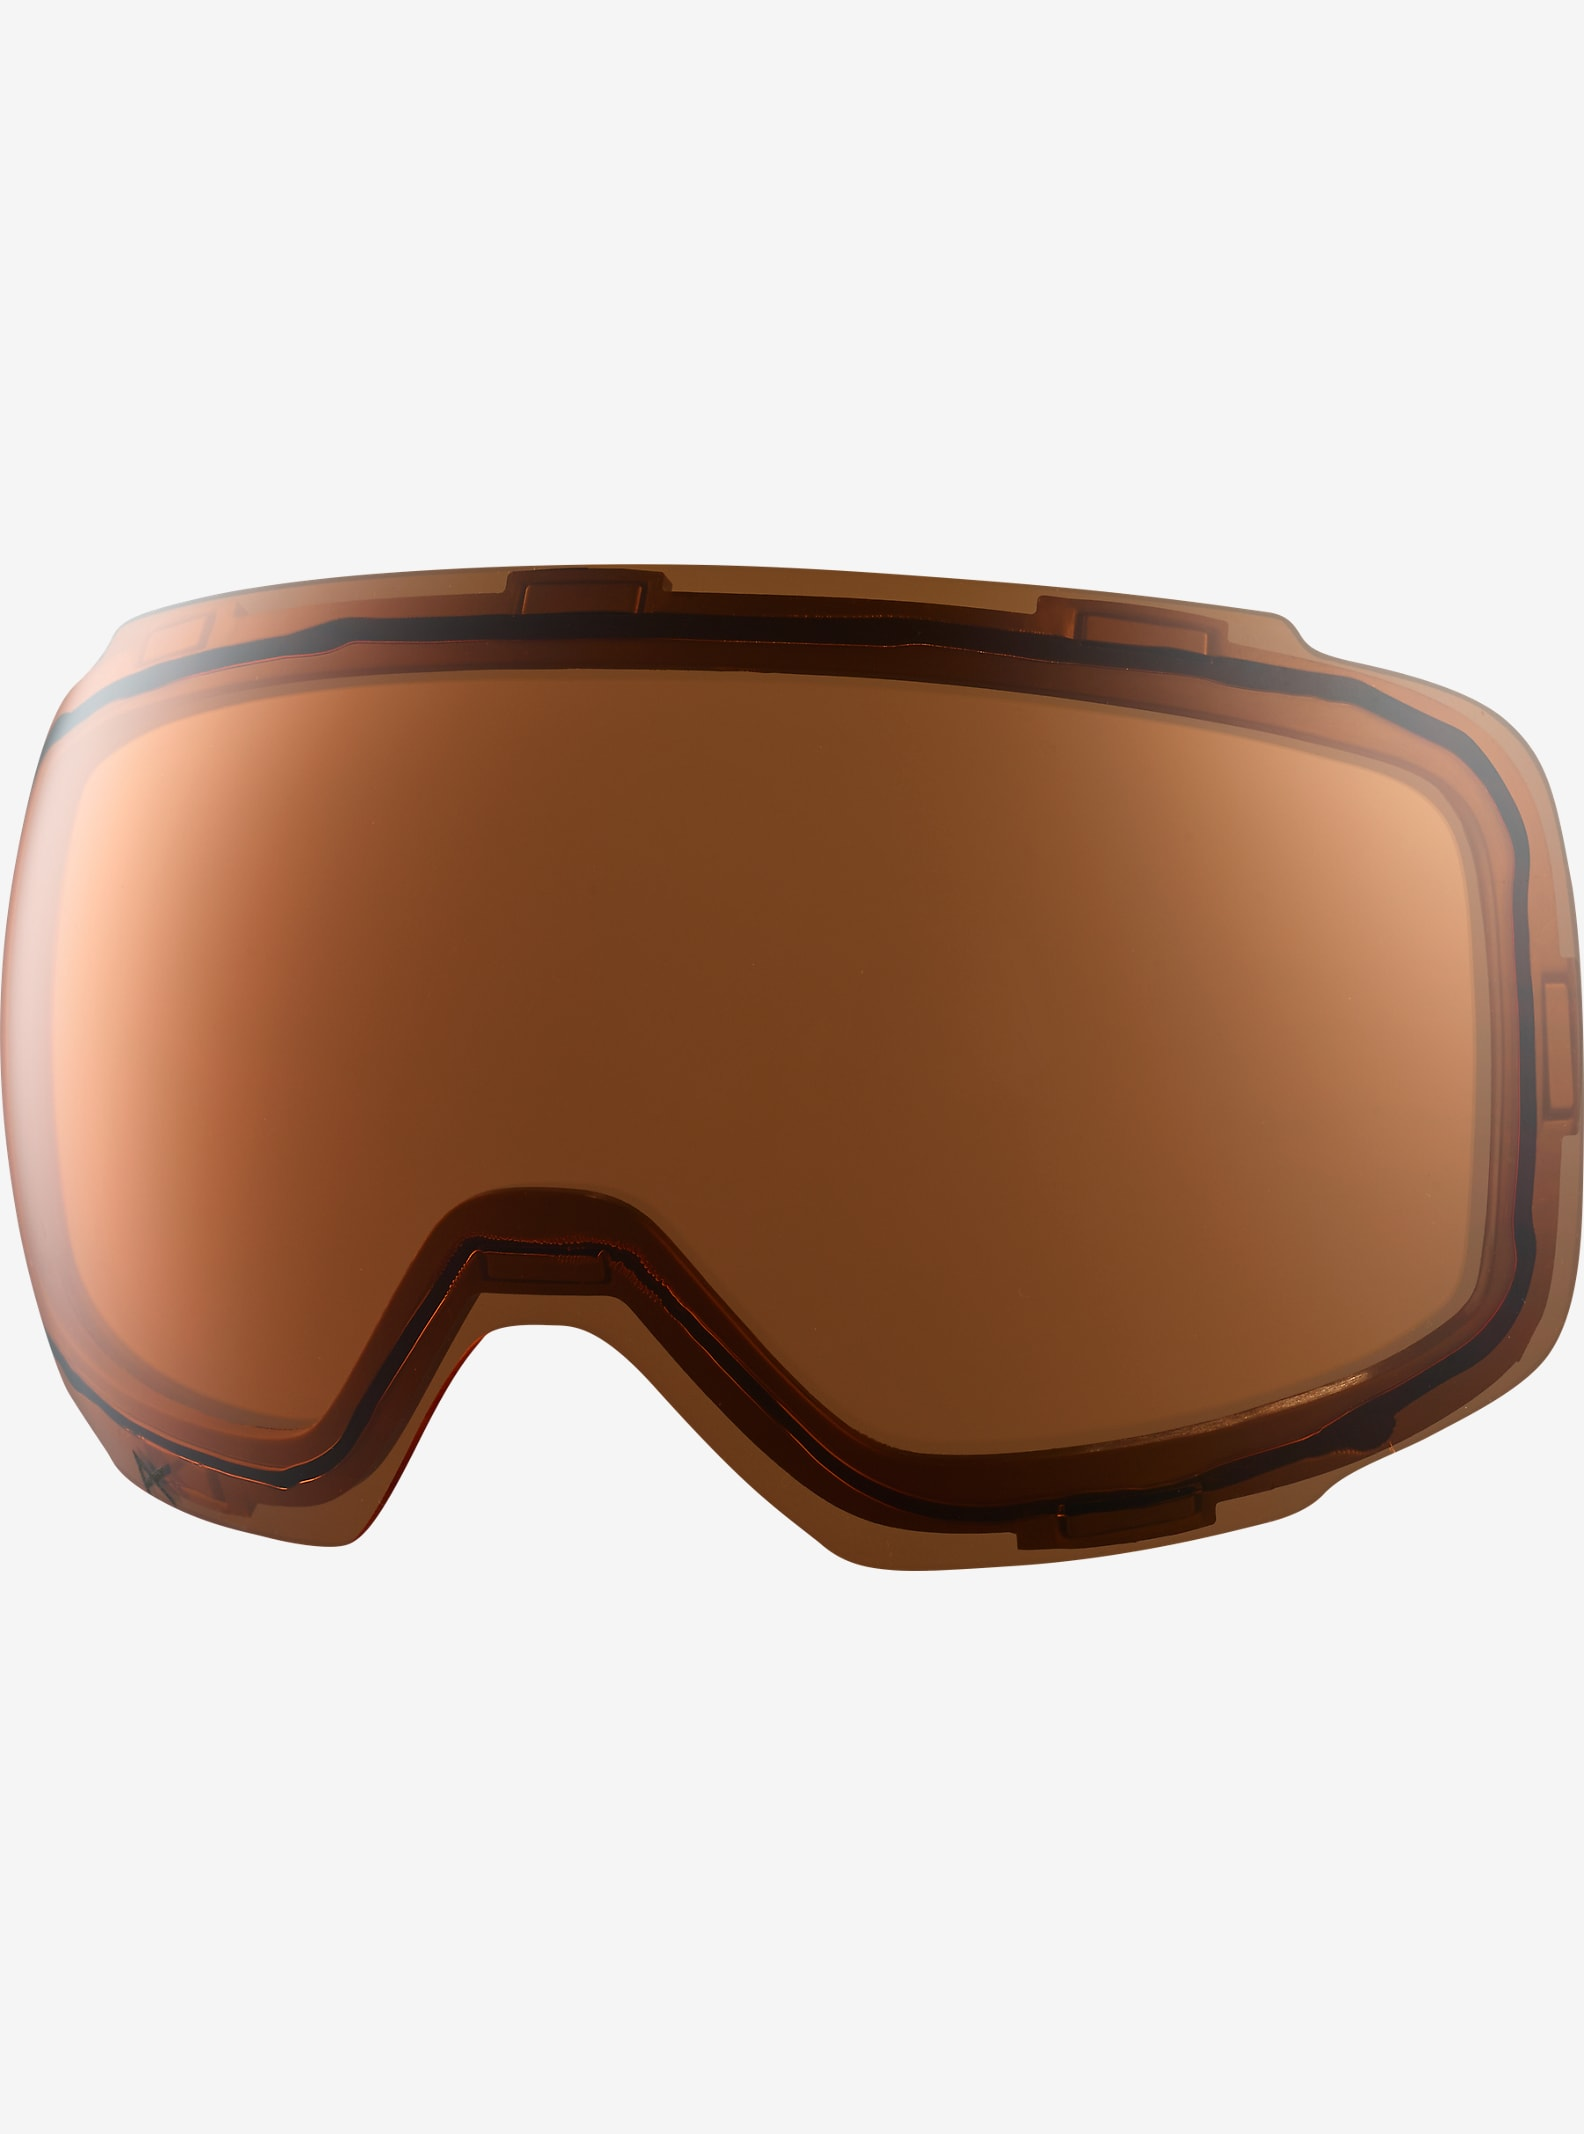 anon. M2 Goggle Lens shown in Amber (55% VLT)